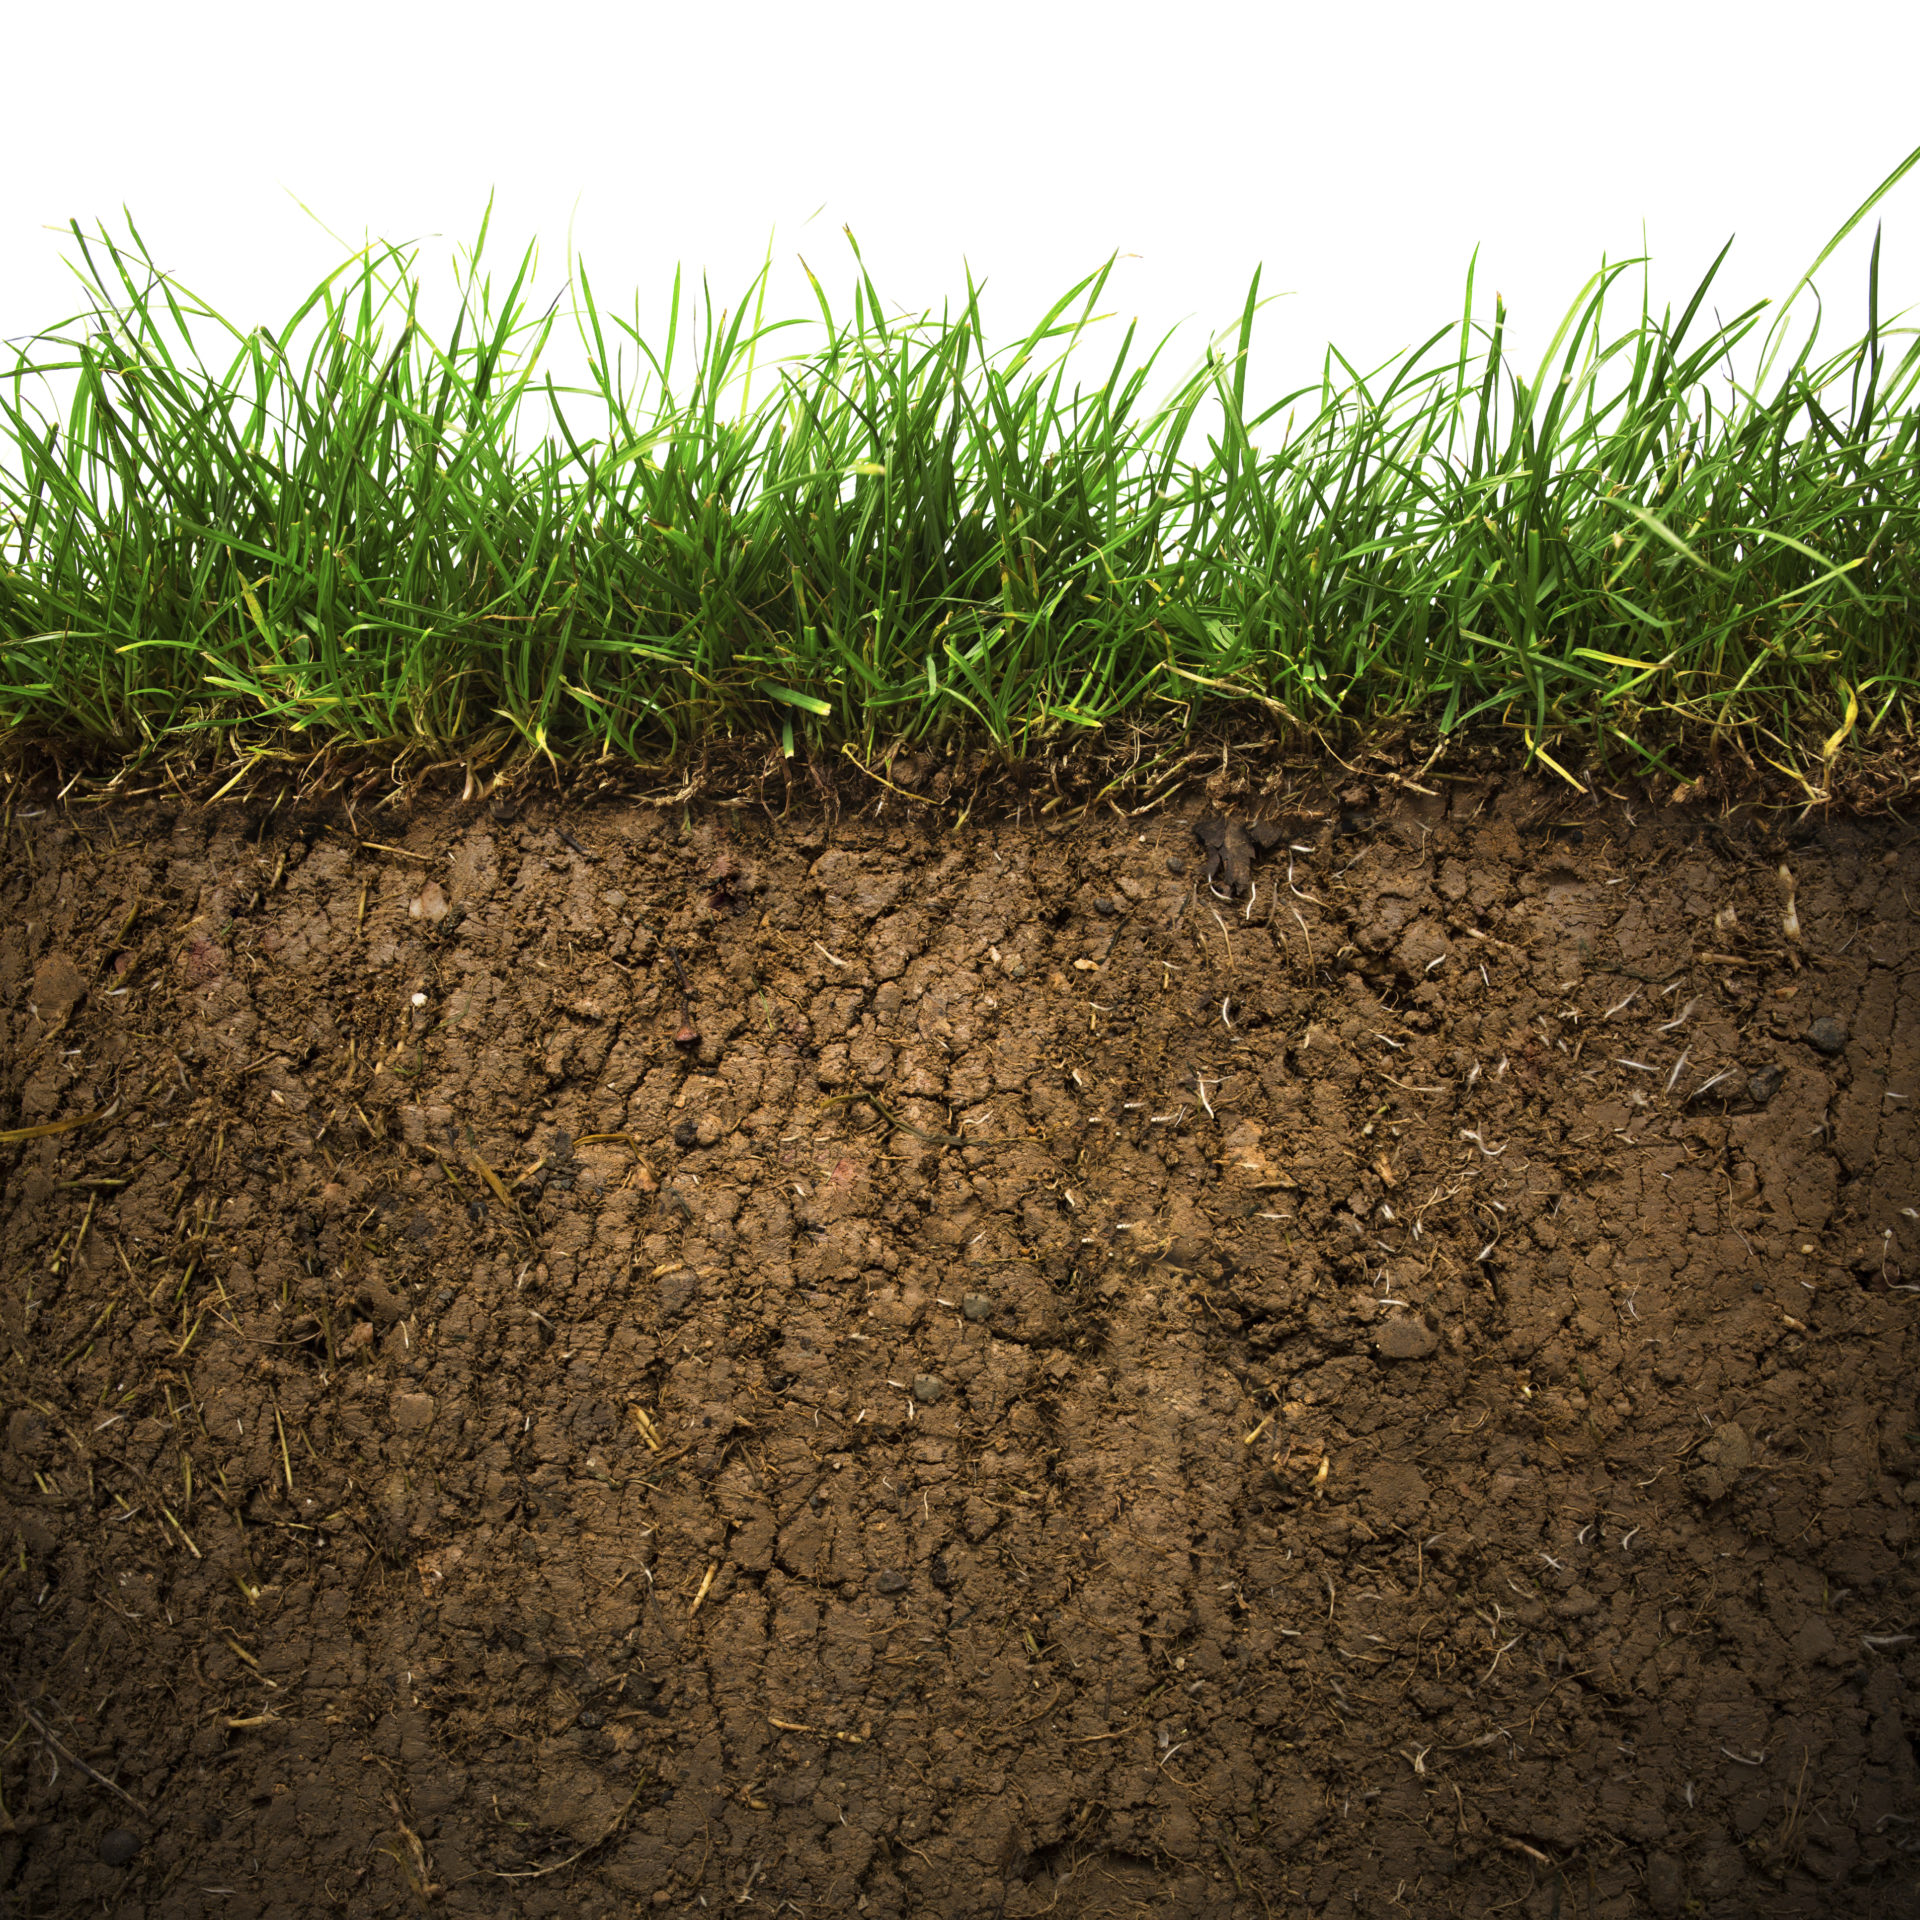 illustration of how dirt delivers grass: the strengthened power of nature